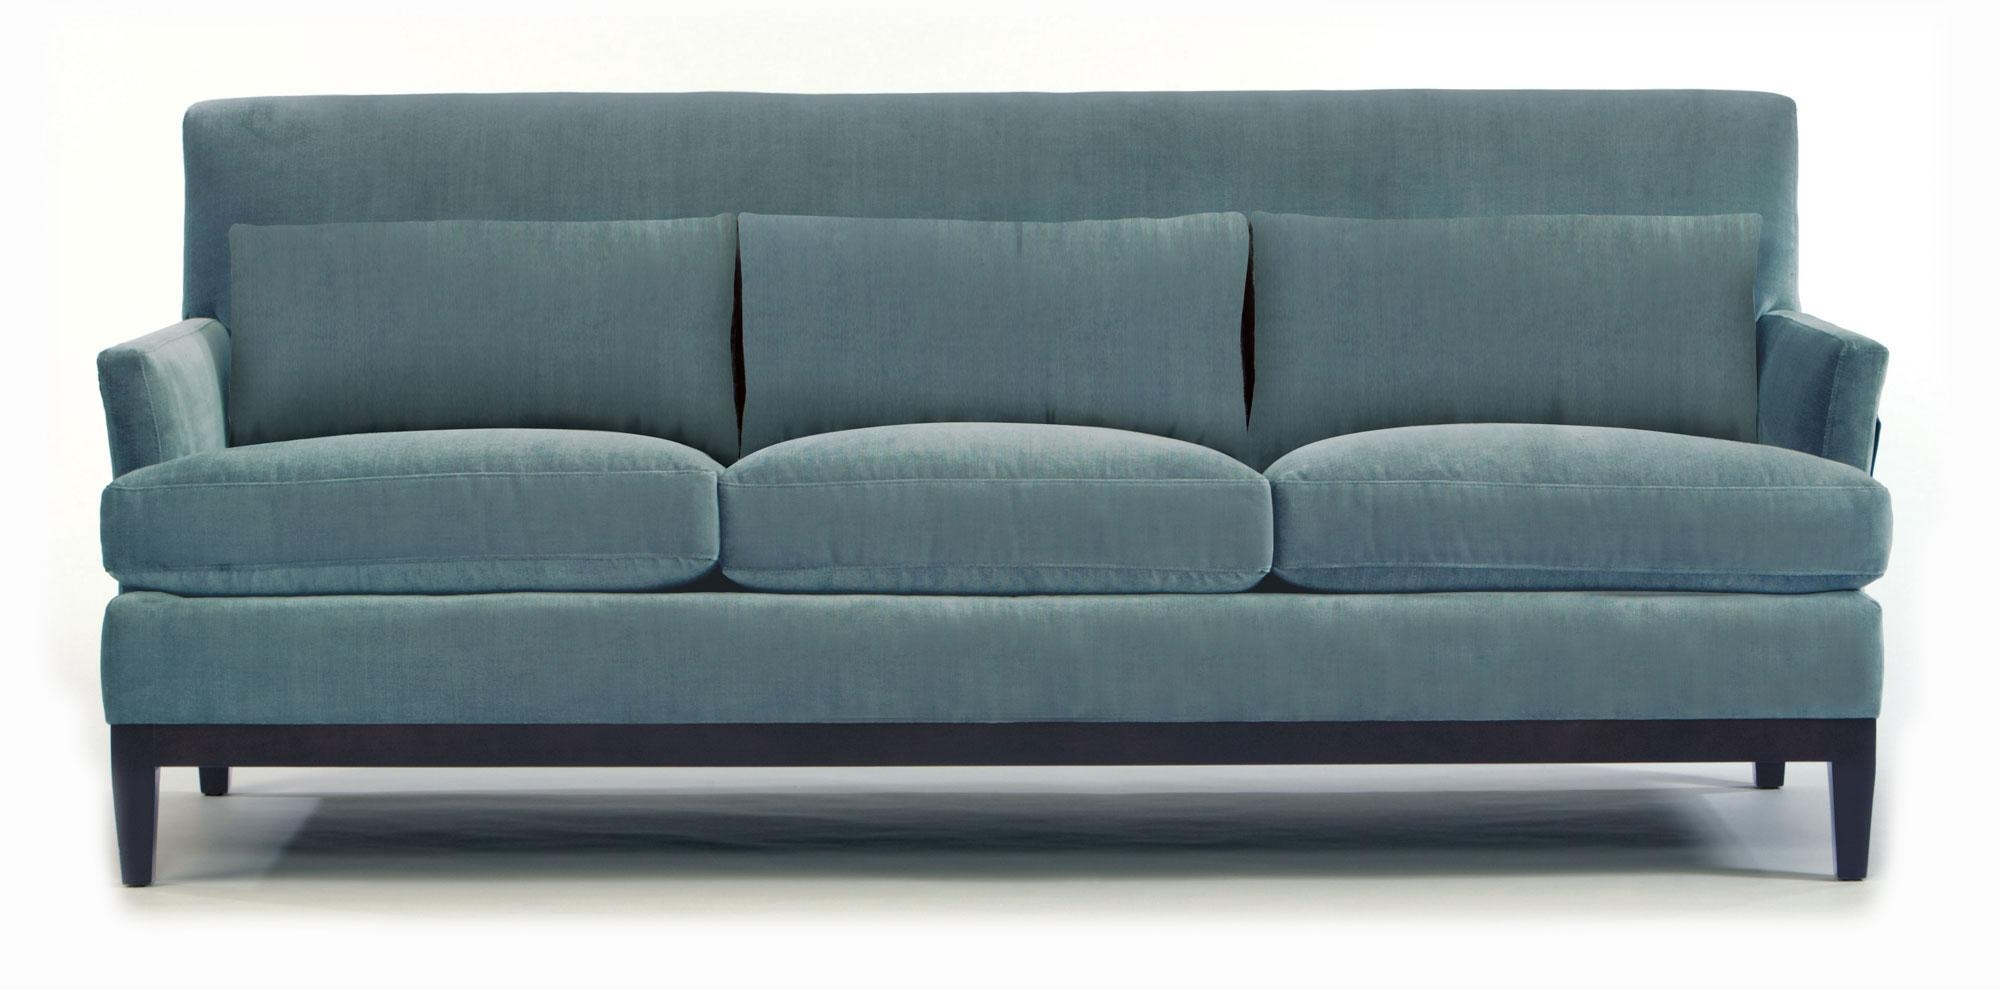 Furniture: Enchanting Bernhardt Sofa For Best Living Room Throughout Bernhardt Sofas (View 17 of 20)